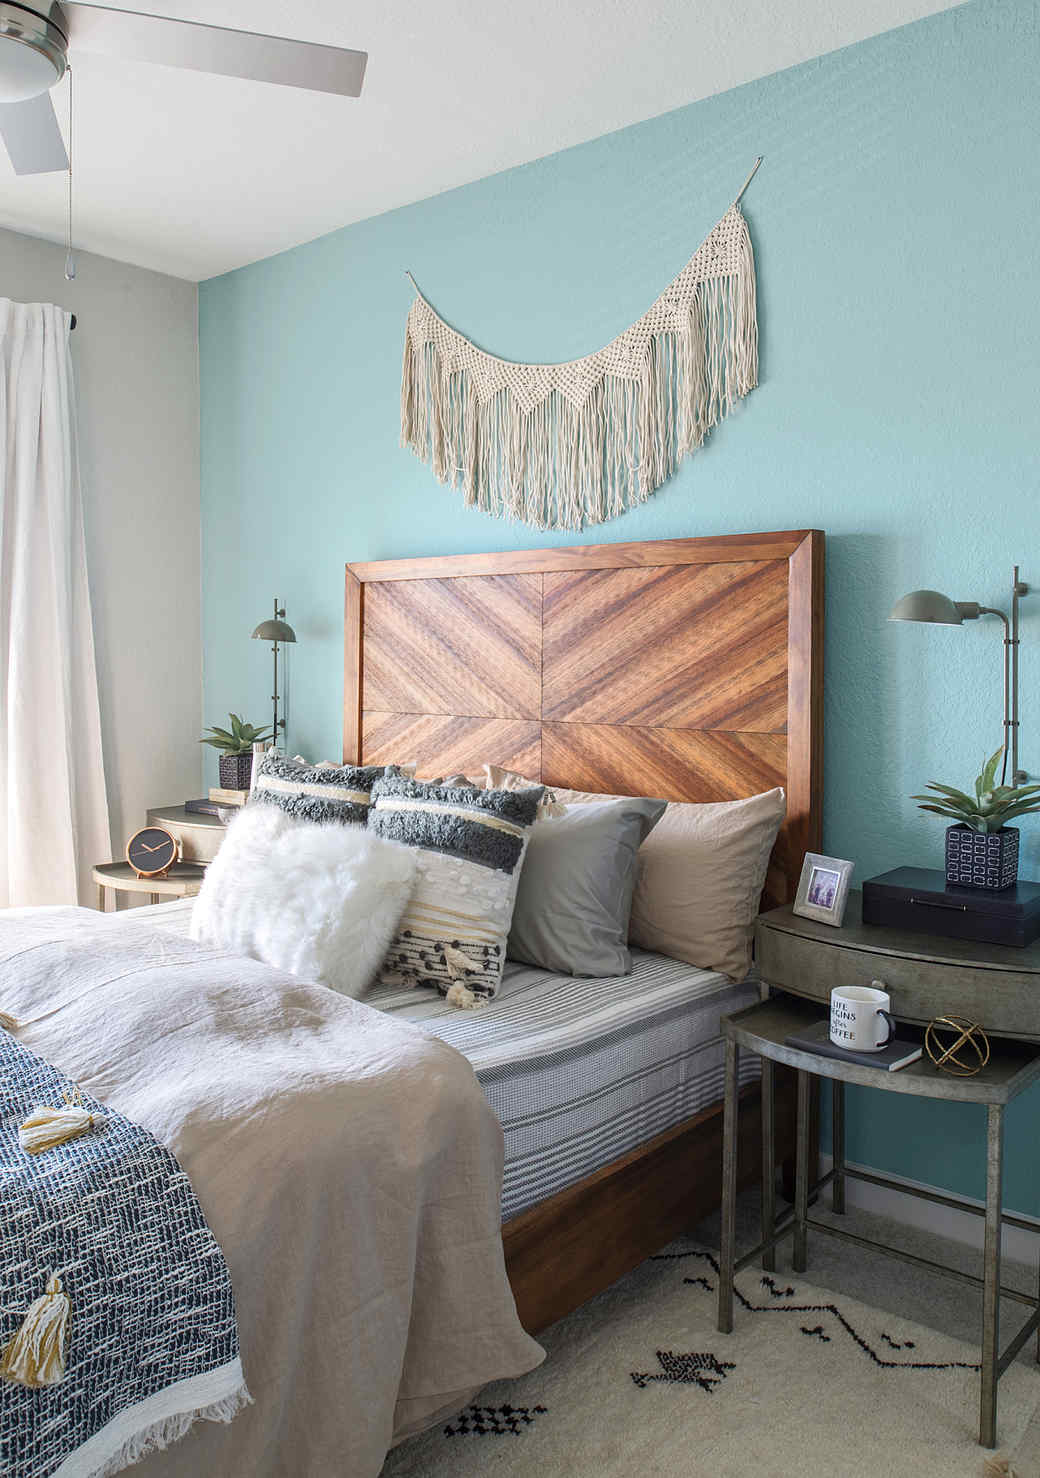 Beachy Boho Bedroom Vibes